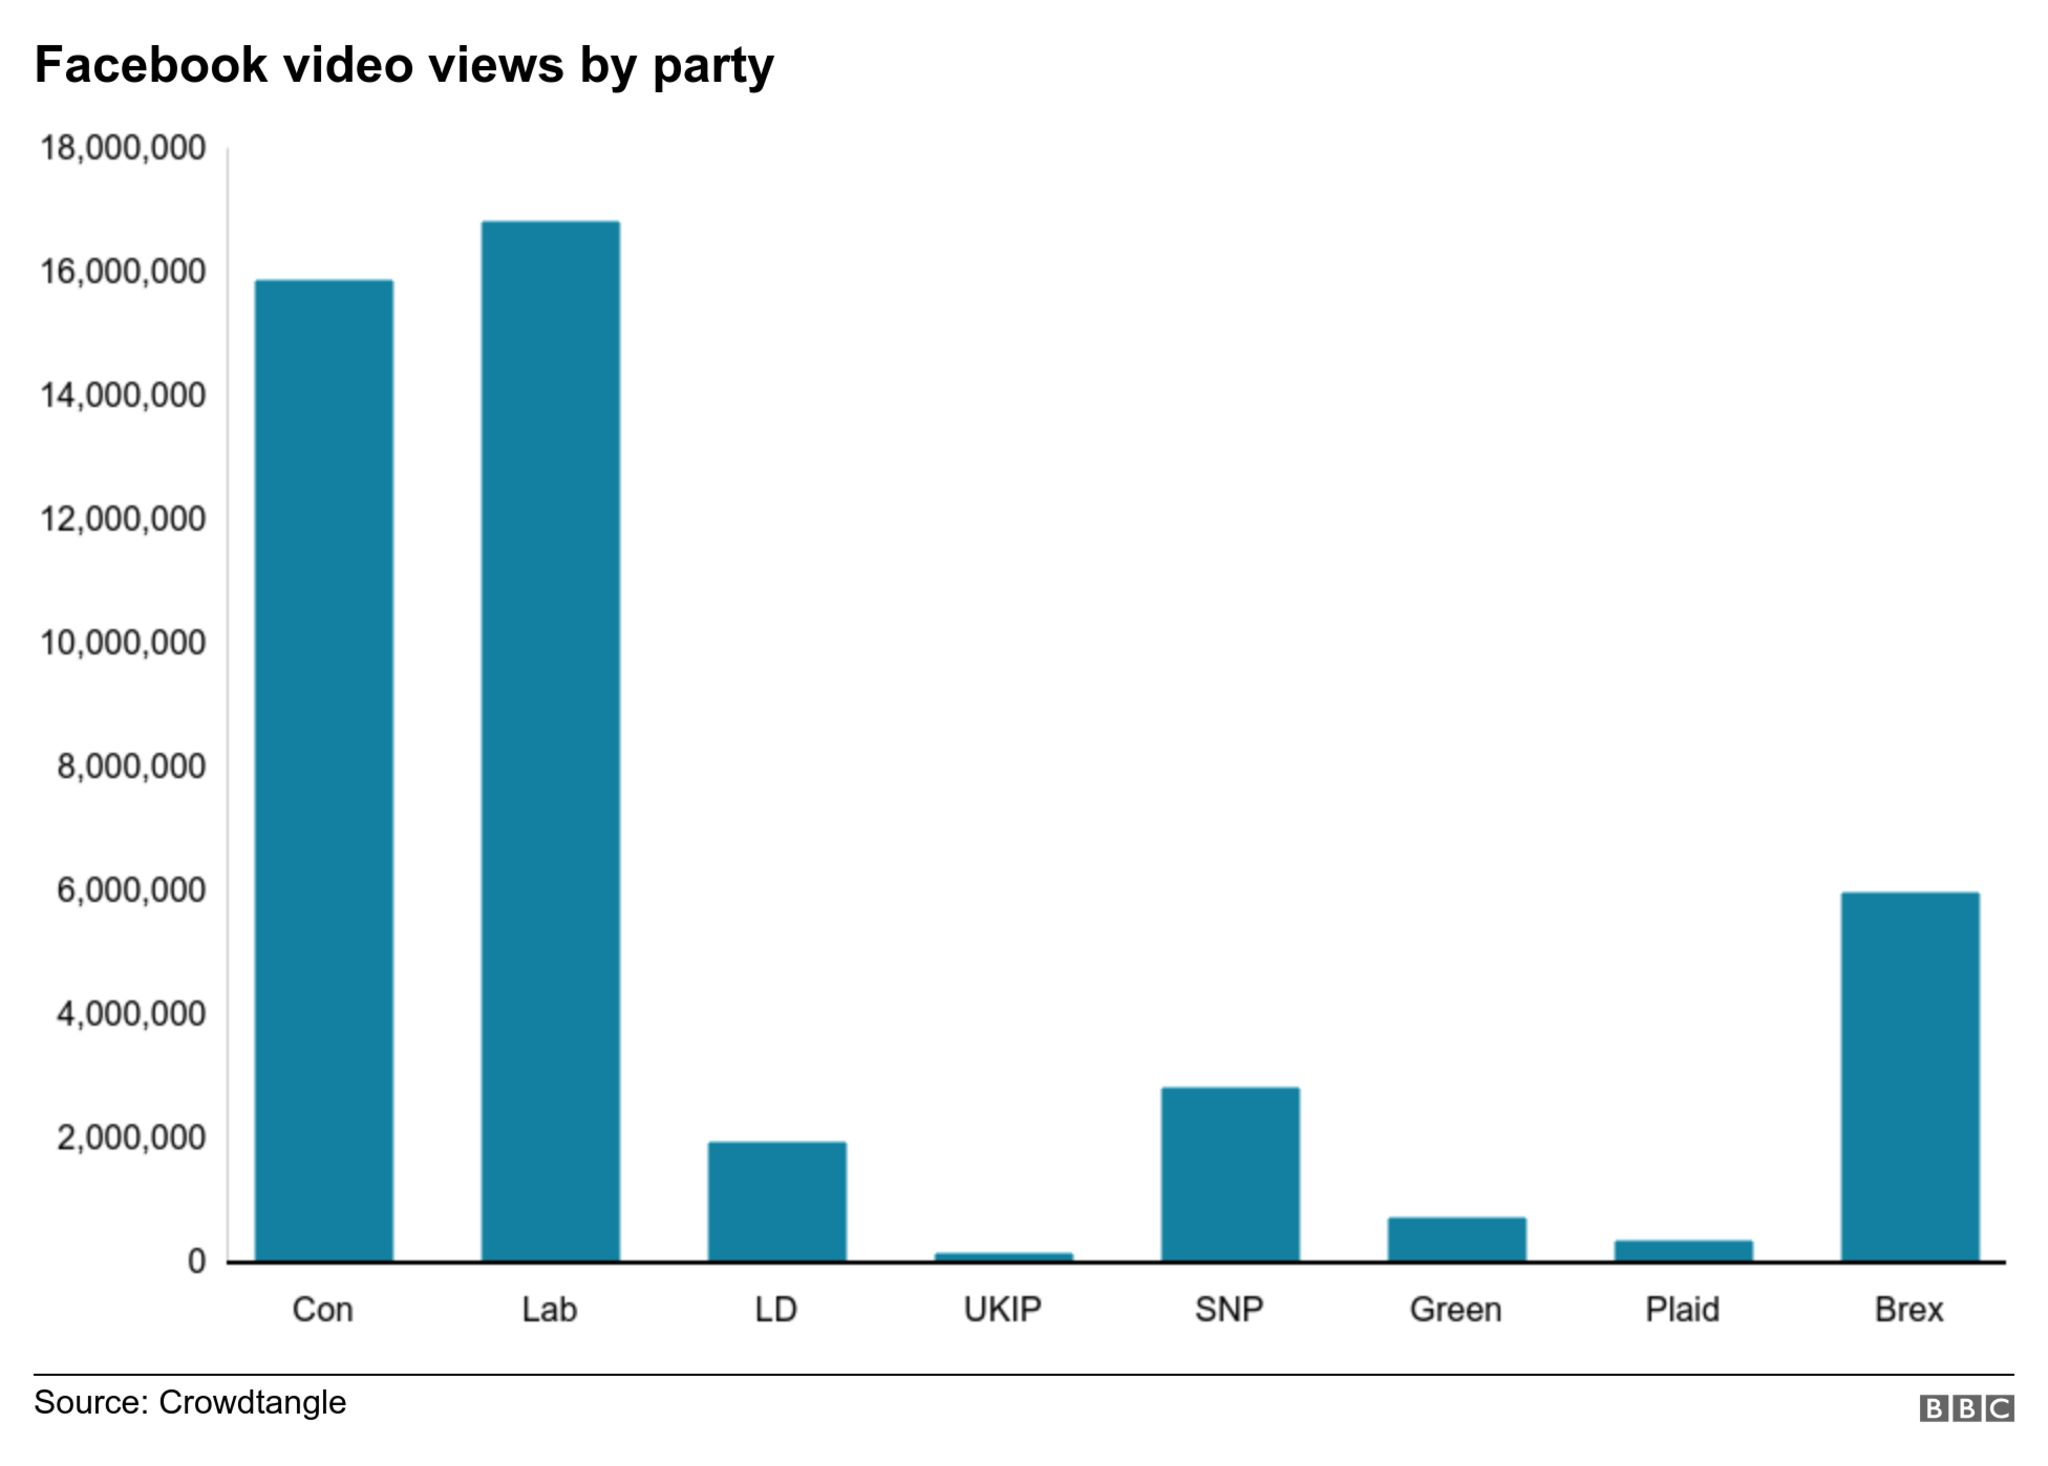 Video views on Facebook by party from 29 October to 11 December